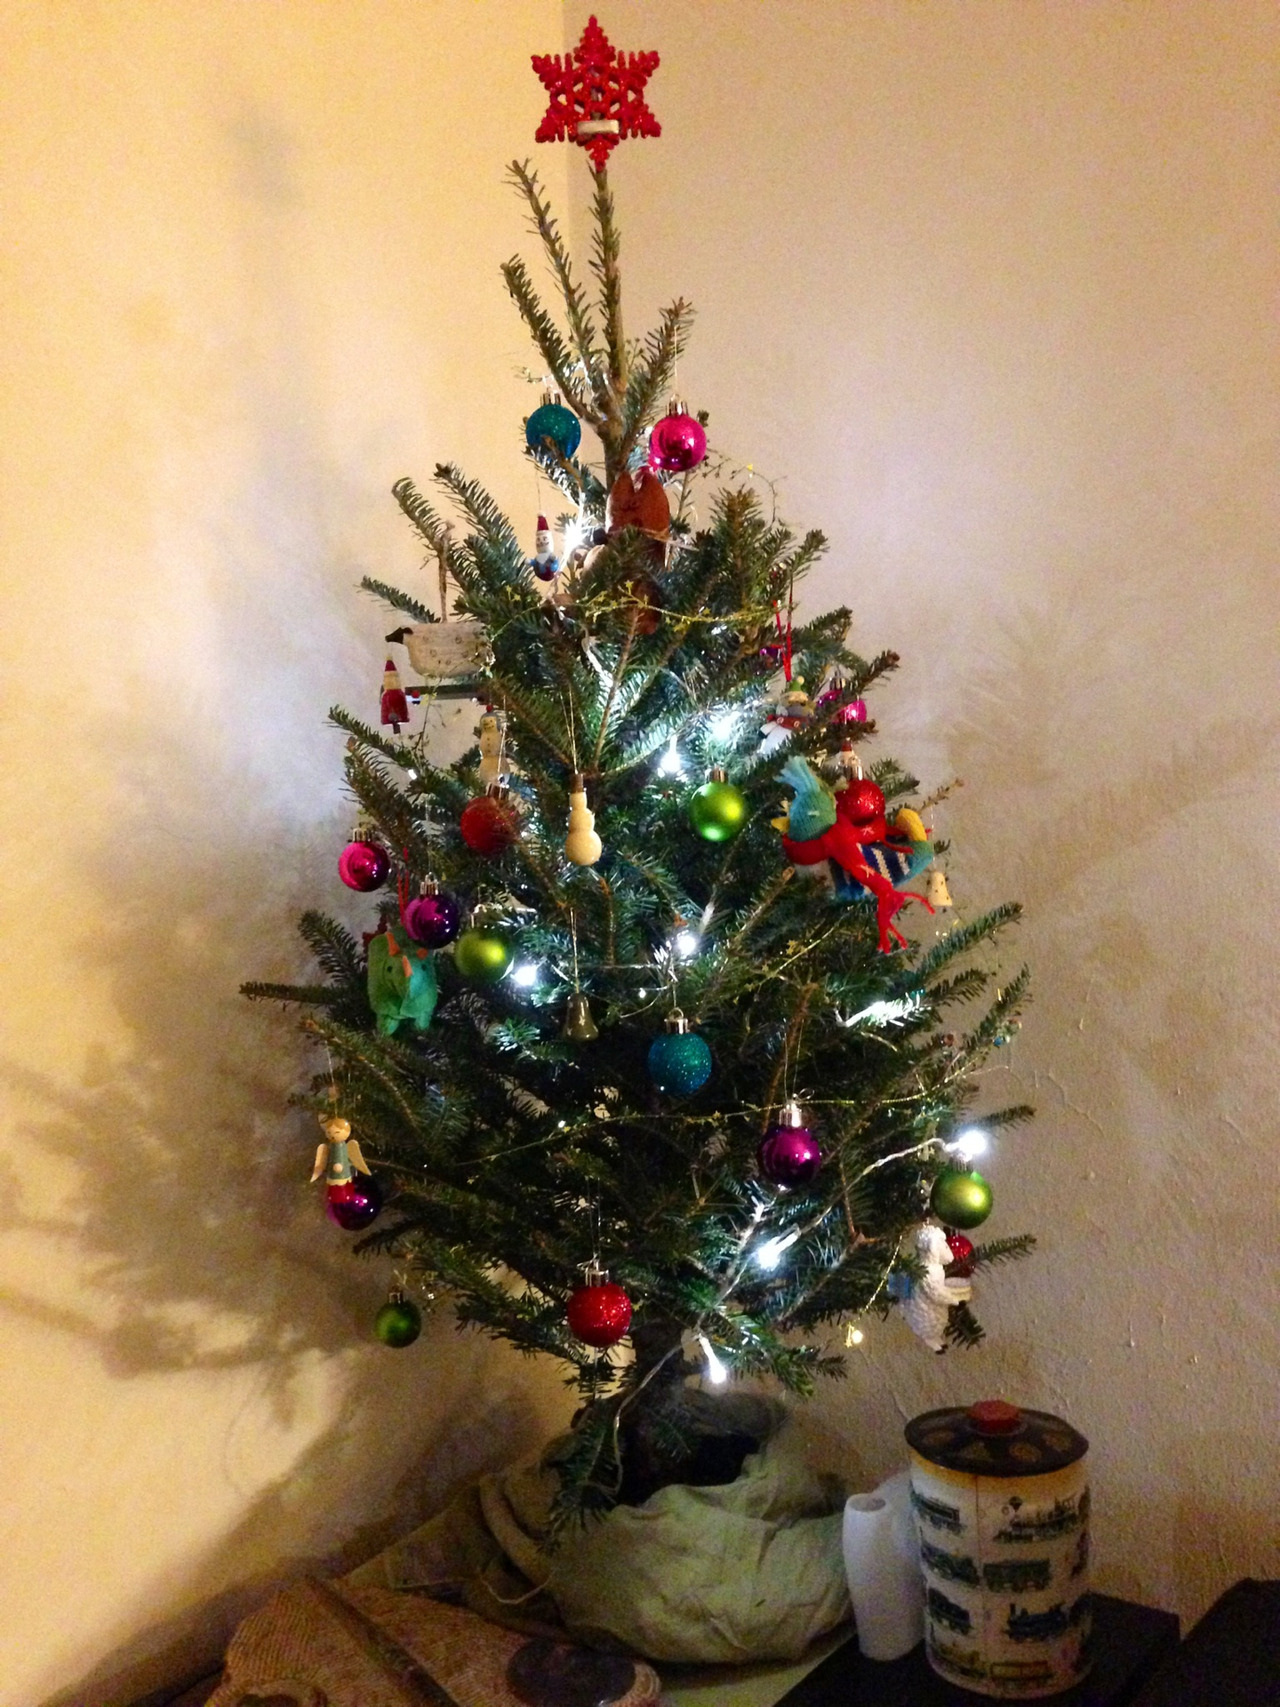 Our first christmas tree! We've named him Niles.